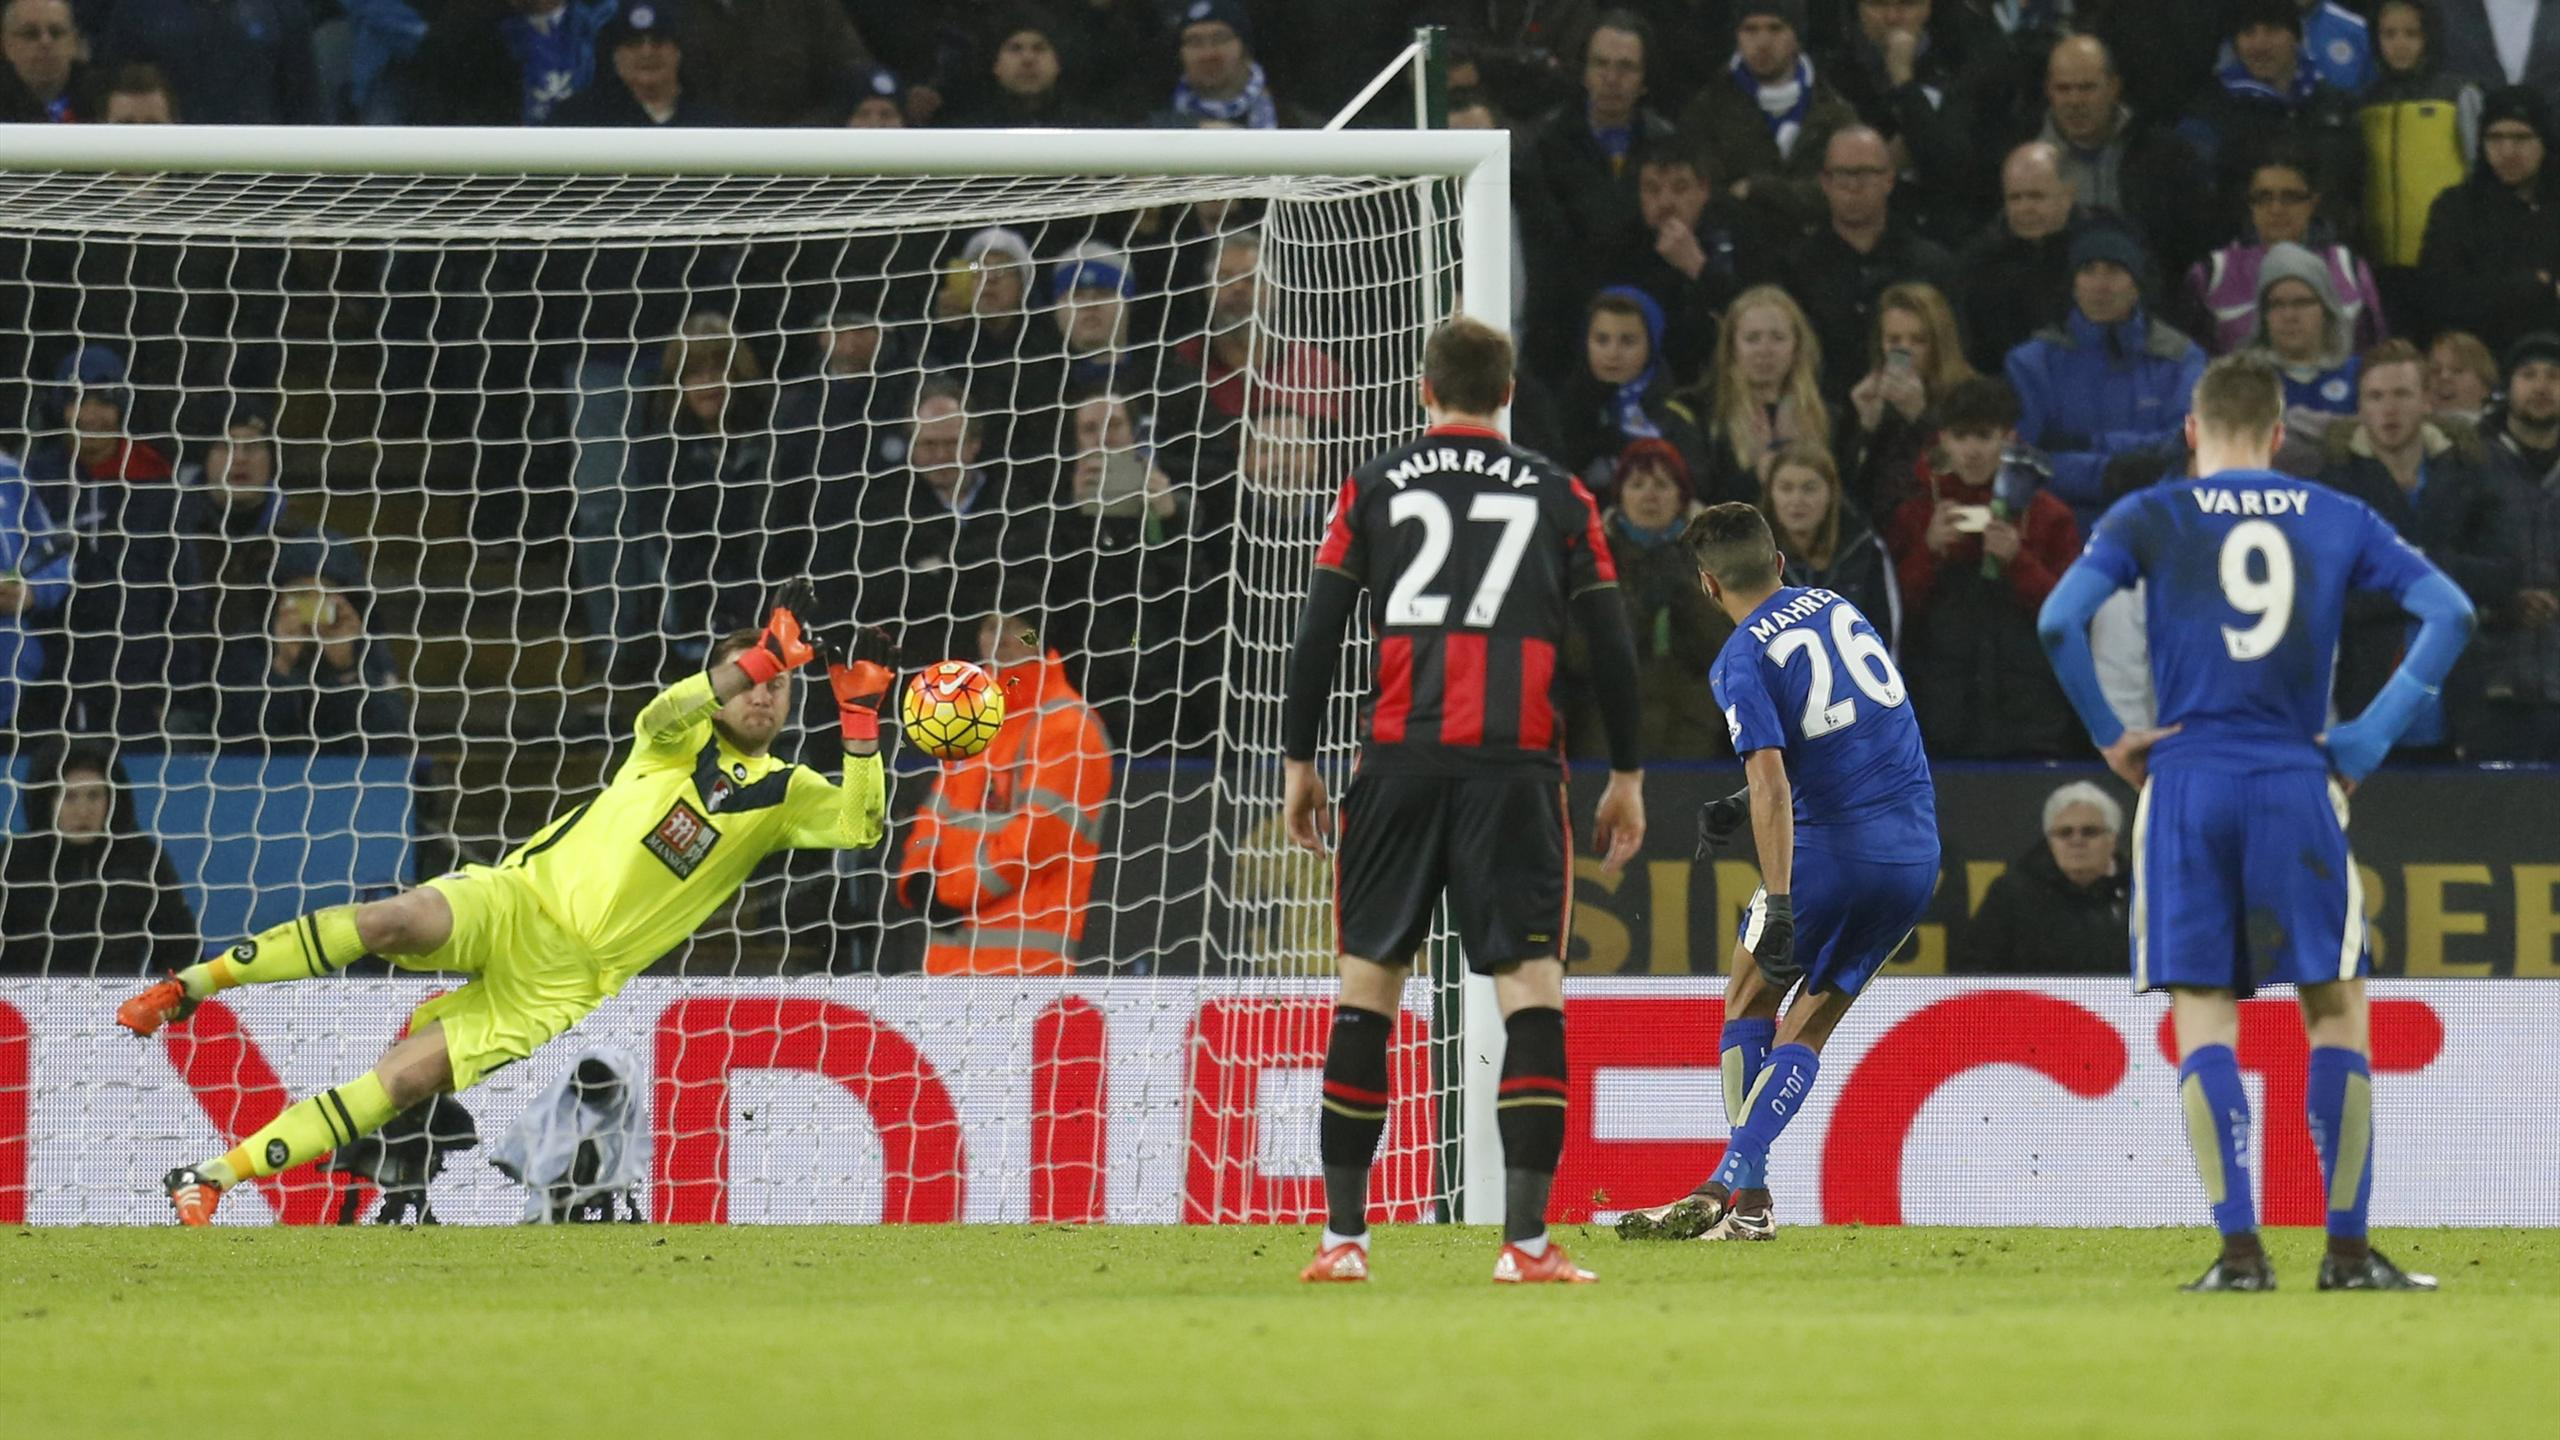 Bournemouth's Artur Boruc saves a penalty from Leicester's Riyad Mahrez